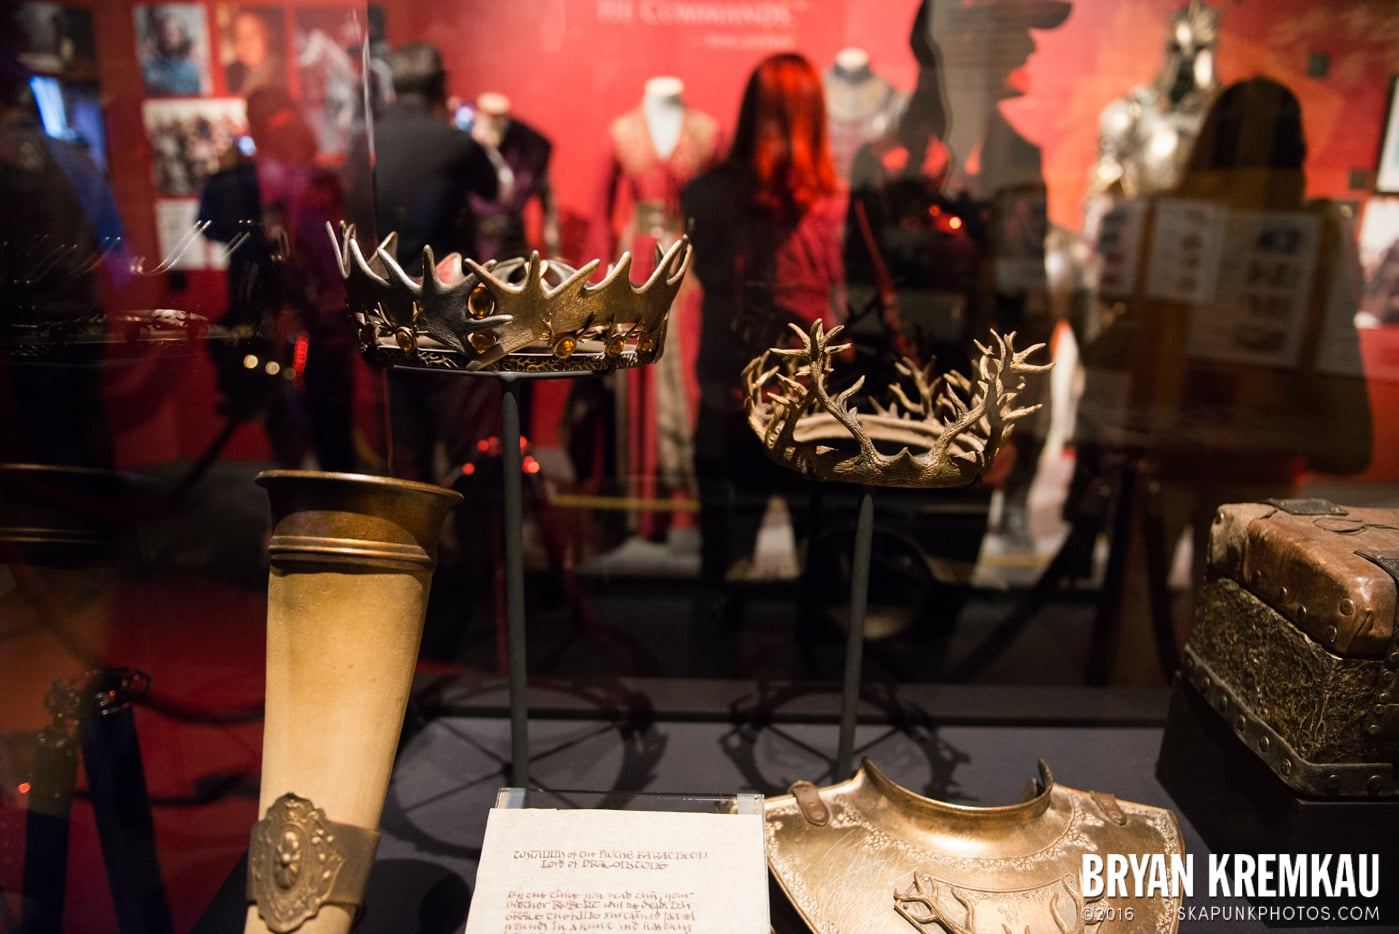 Game Of Thrones Exhibition @ New York, NY - 3.29.13 (25)